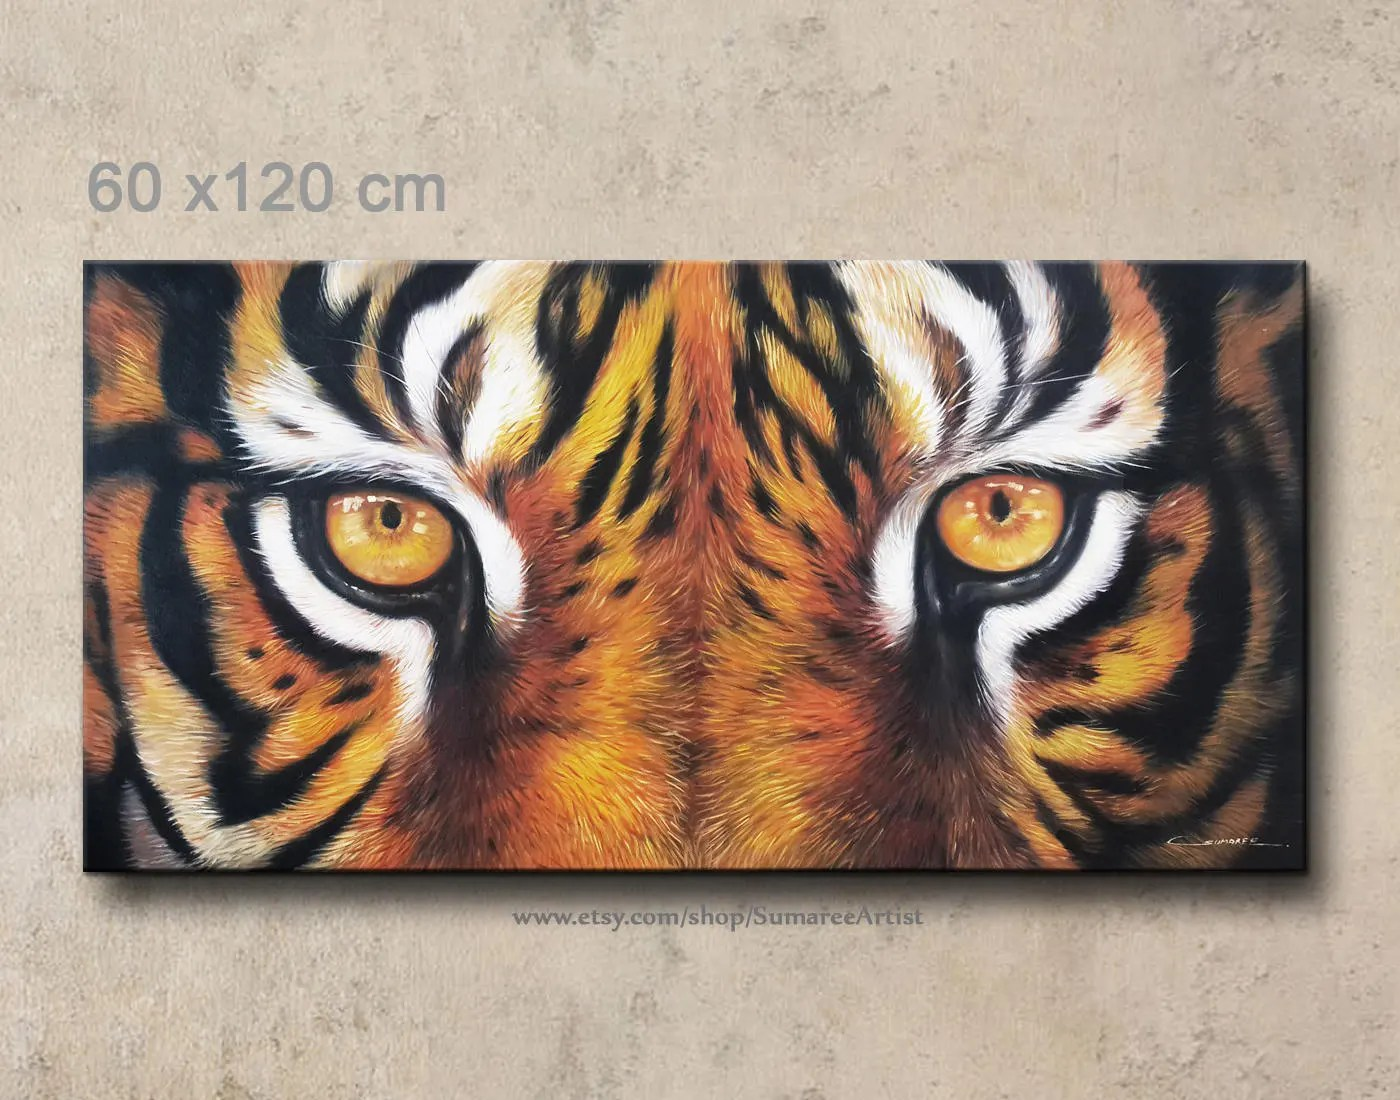 60 X 120 Cm Tiger Eyes Oil Painting On Canvas Wall Decor